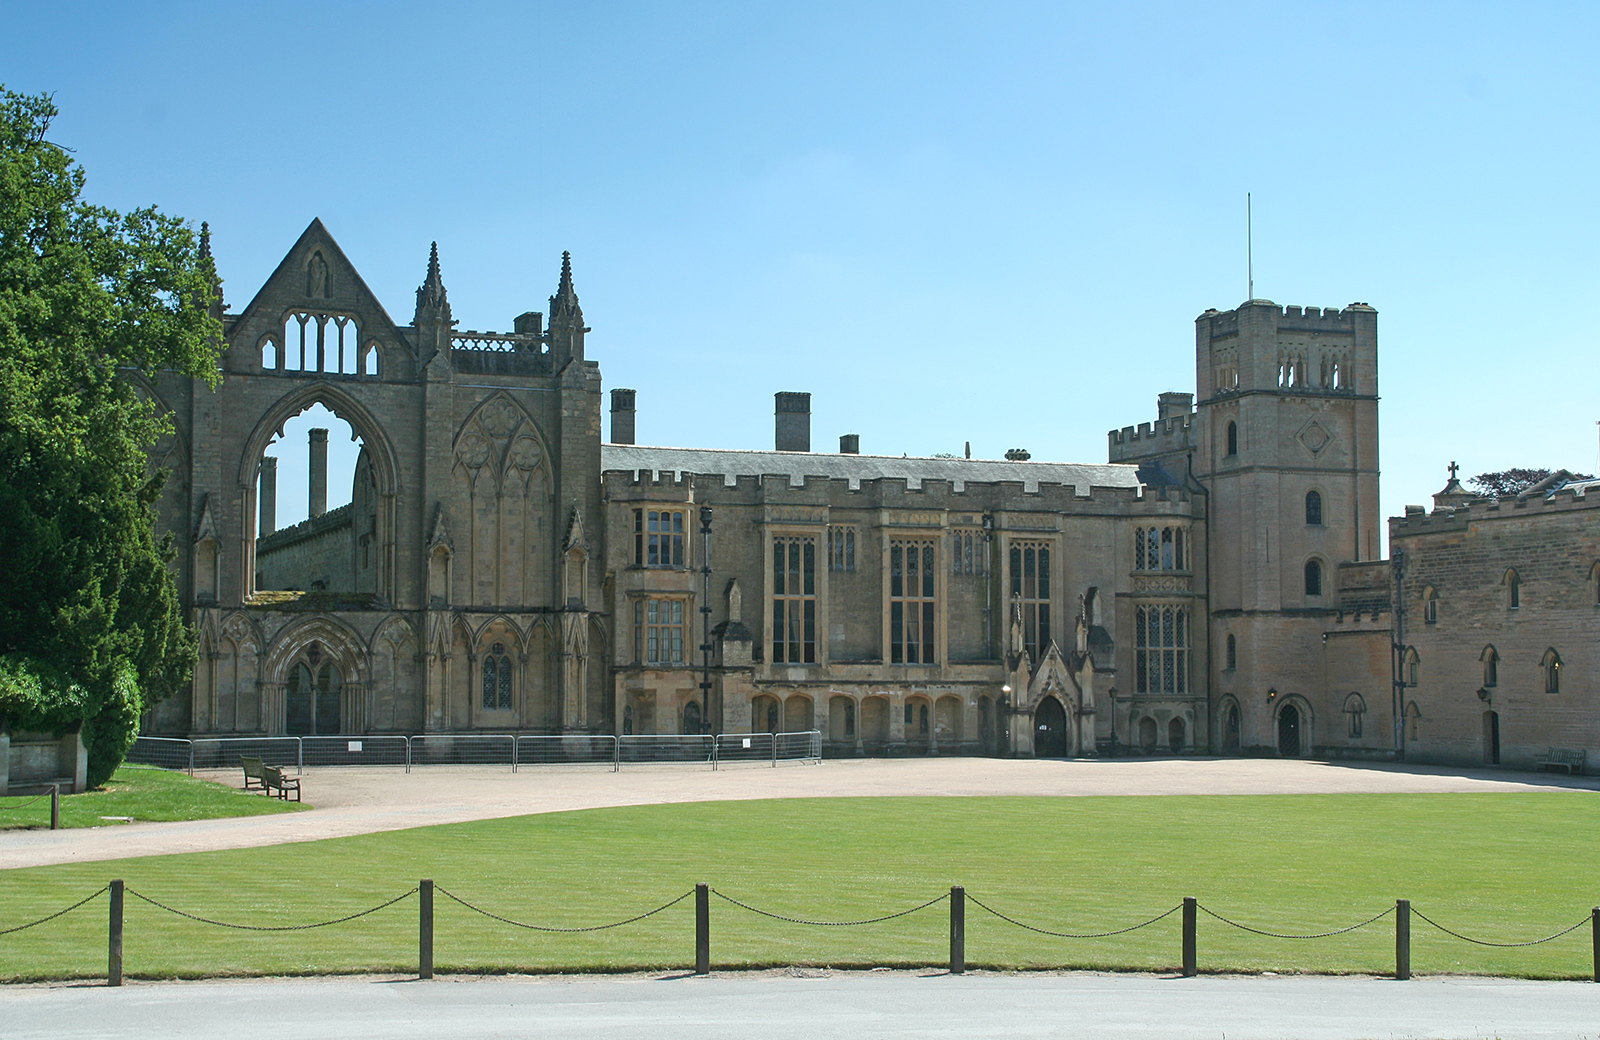 Newstead Abbey - the home of Lord Byron